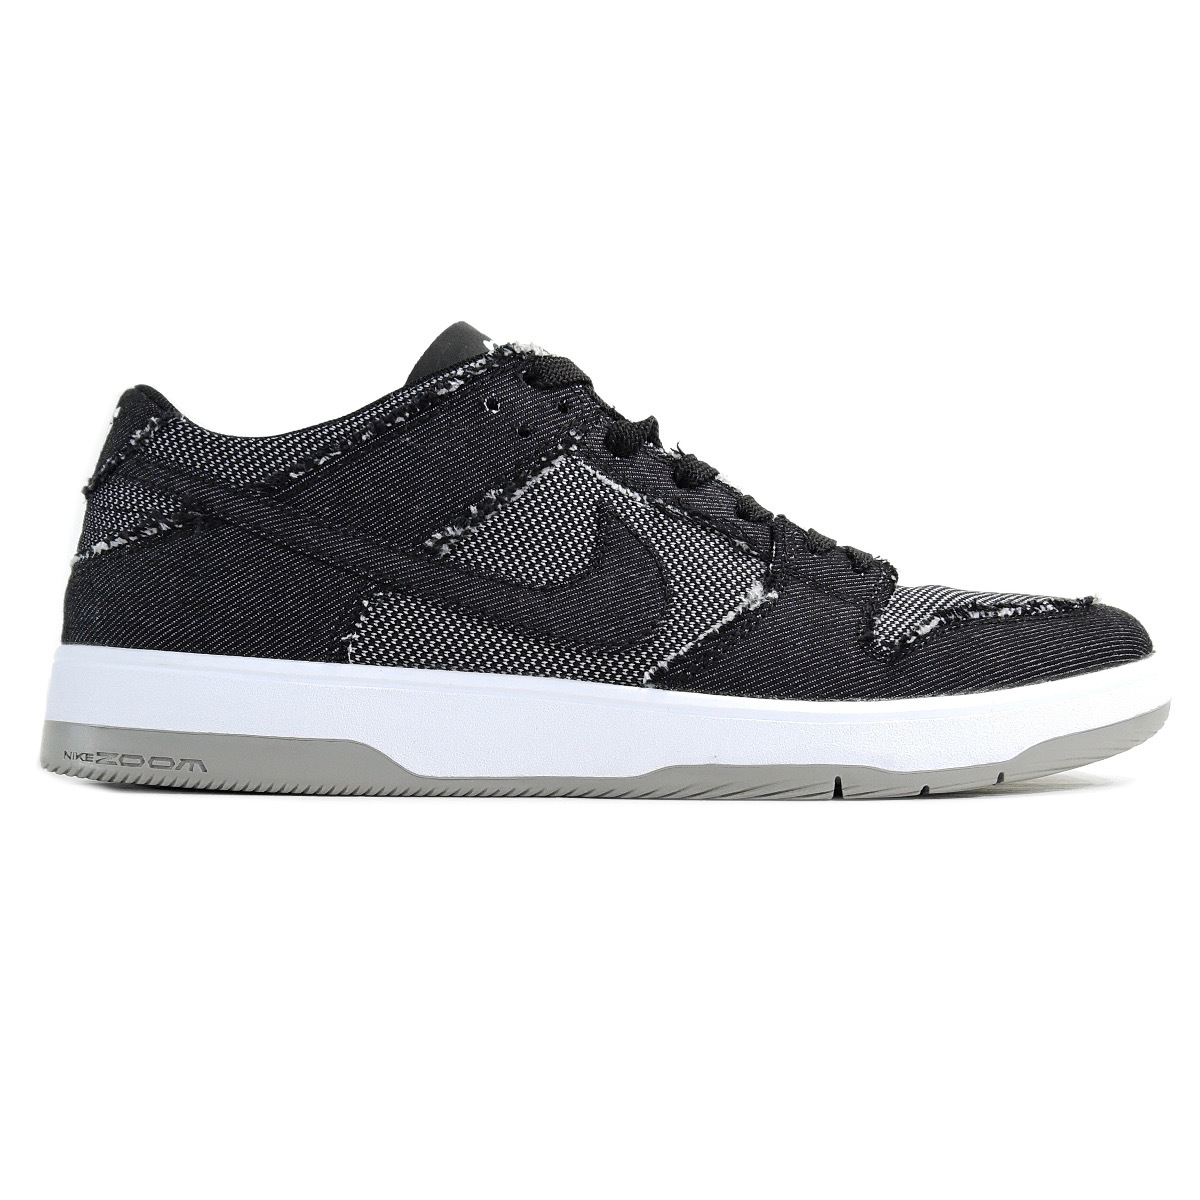 17年製 NIKE SB ZOOM DUNK LOW ELITE BE@RBRICK MEDICOM TOY ベアブリック メディコムトイ US9 27.0 877063-002■1757